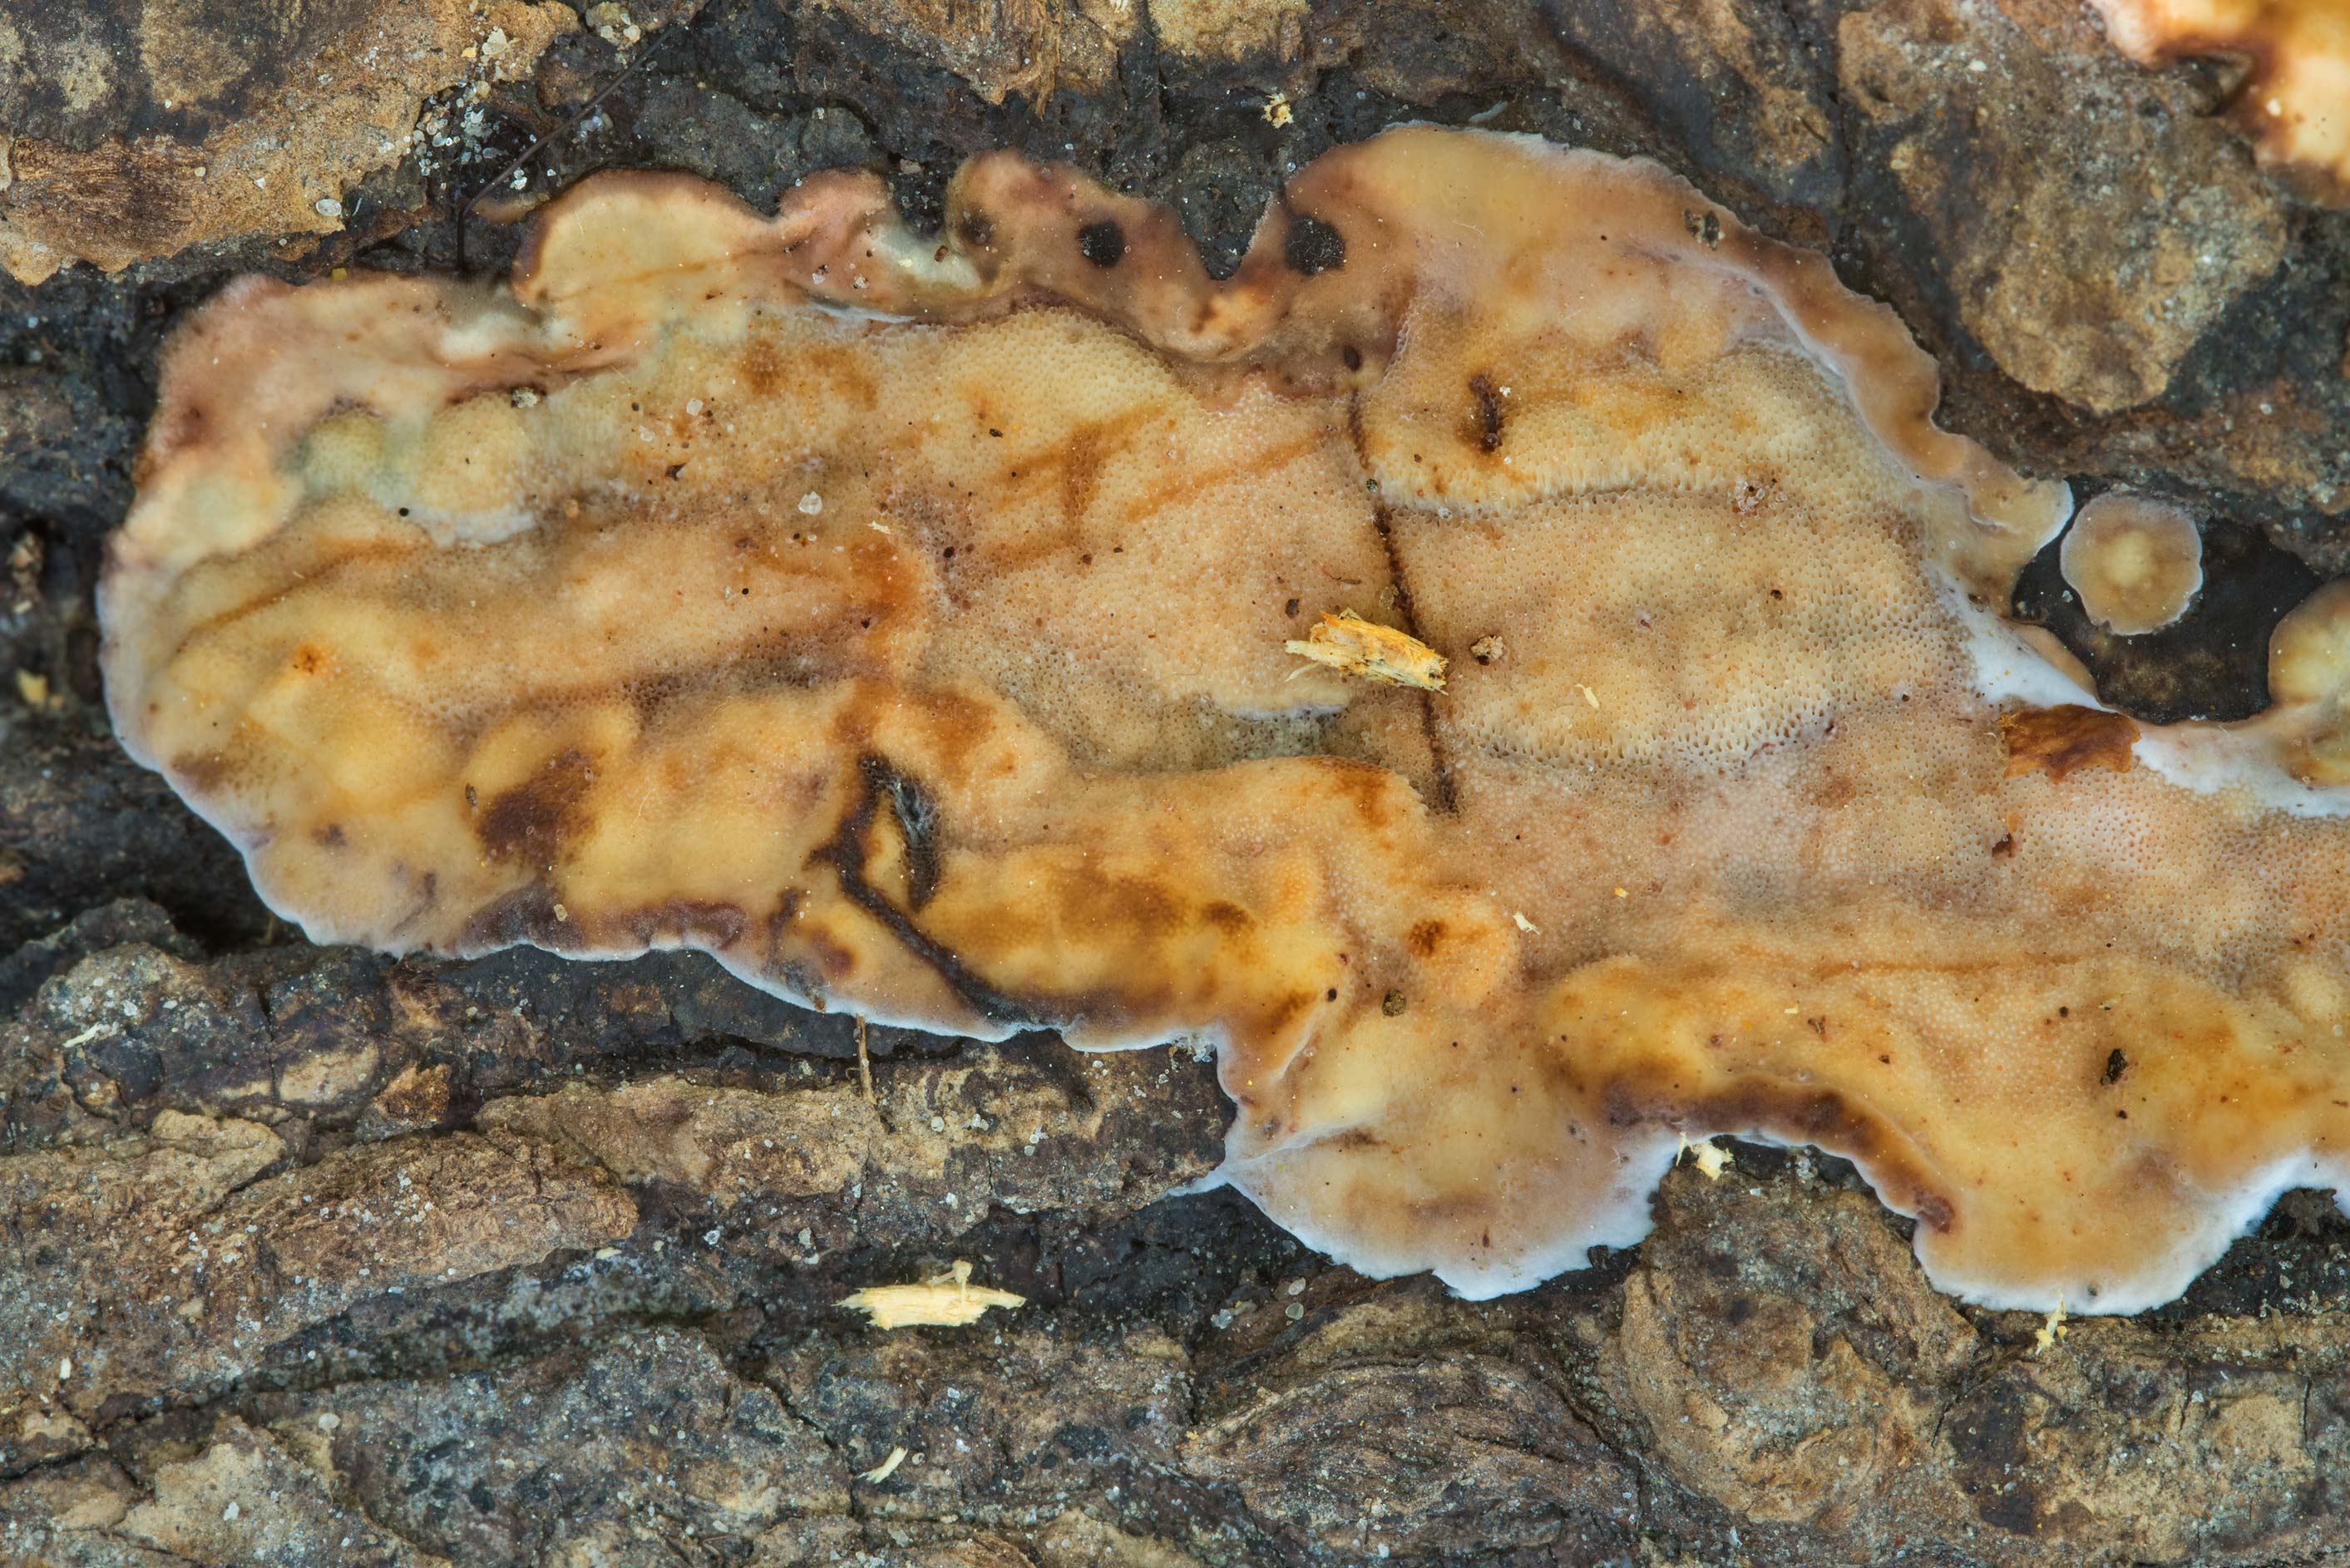 Some soft porous crust fungus on a tree in Lick Creek Park. College Station, Texas